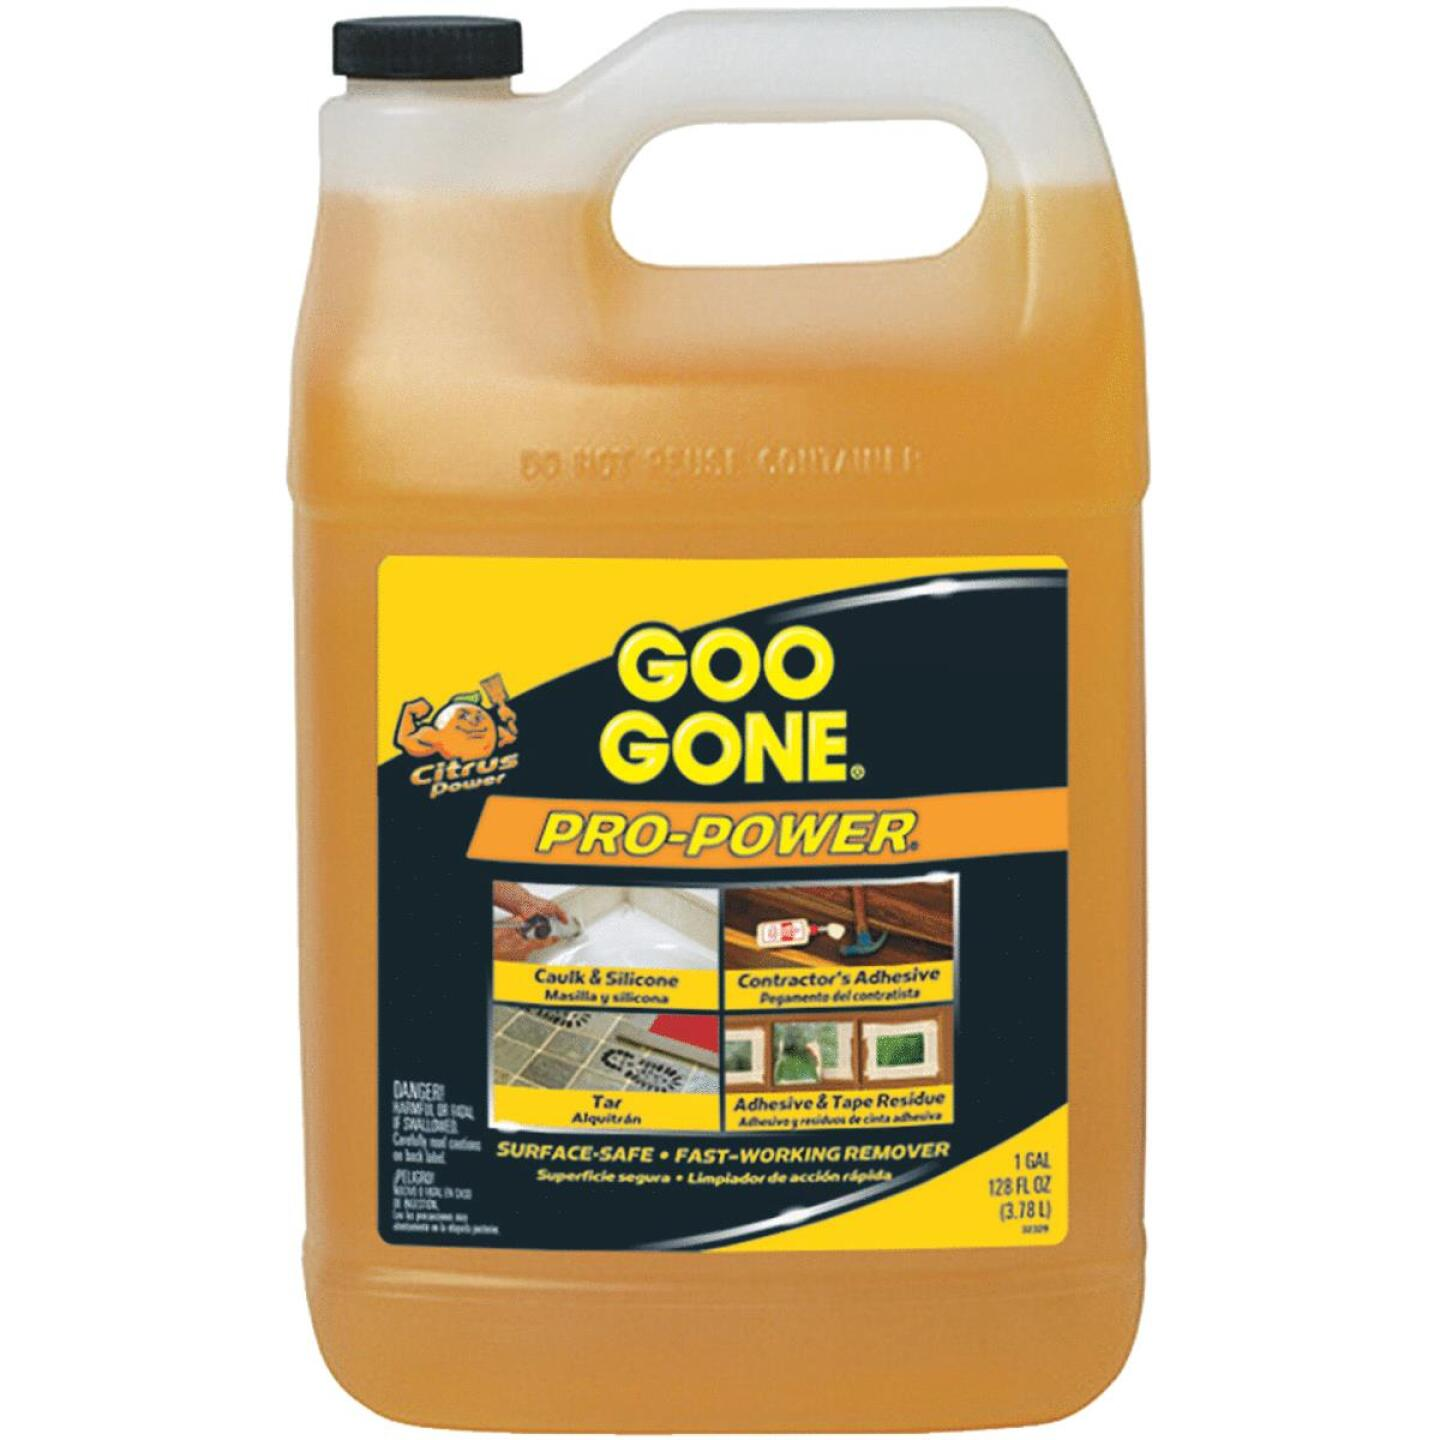 Goo Gone 1 Gal. Pro-Power Adhesive Remover Image 21